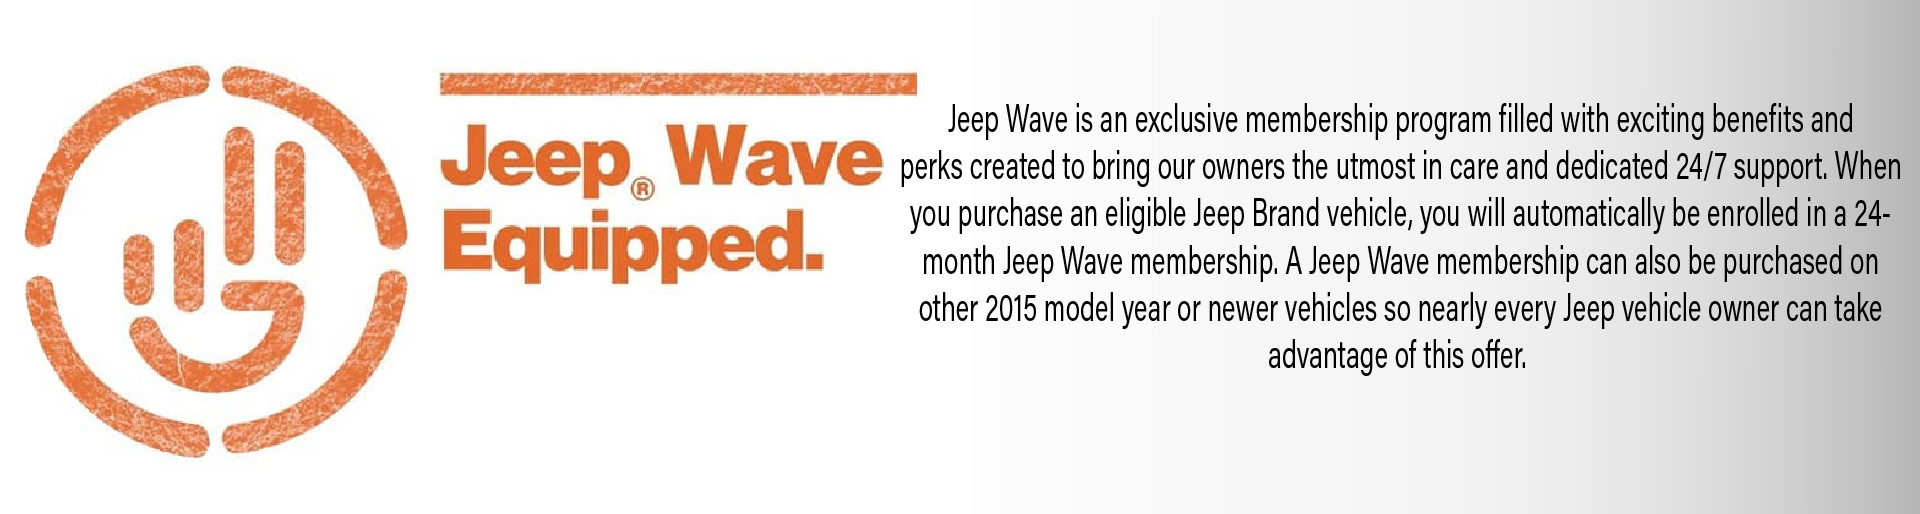 jeep-wave-banner